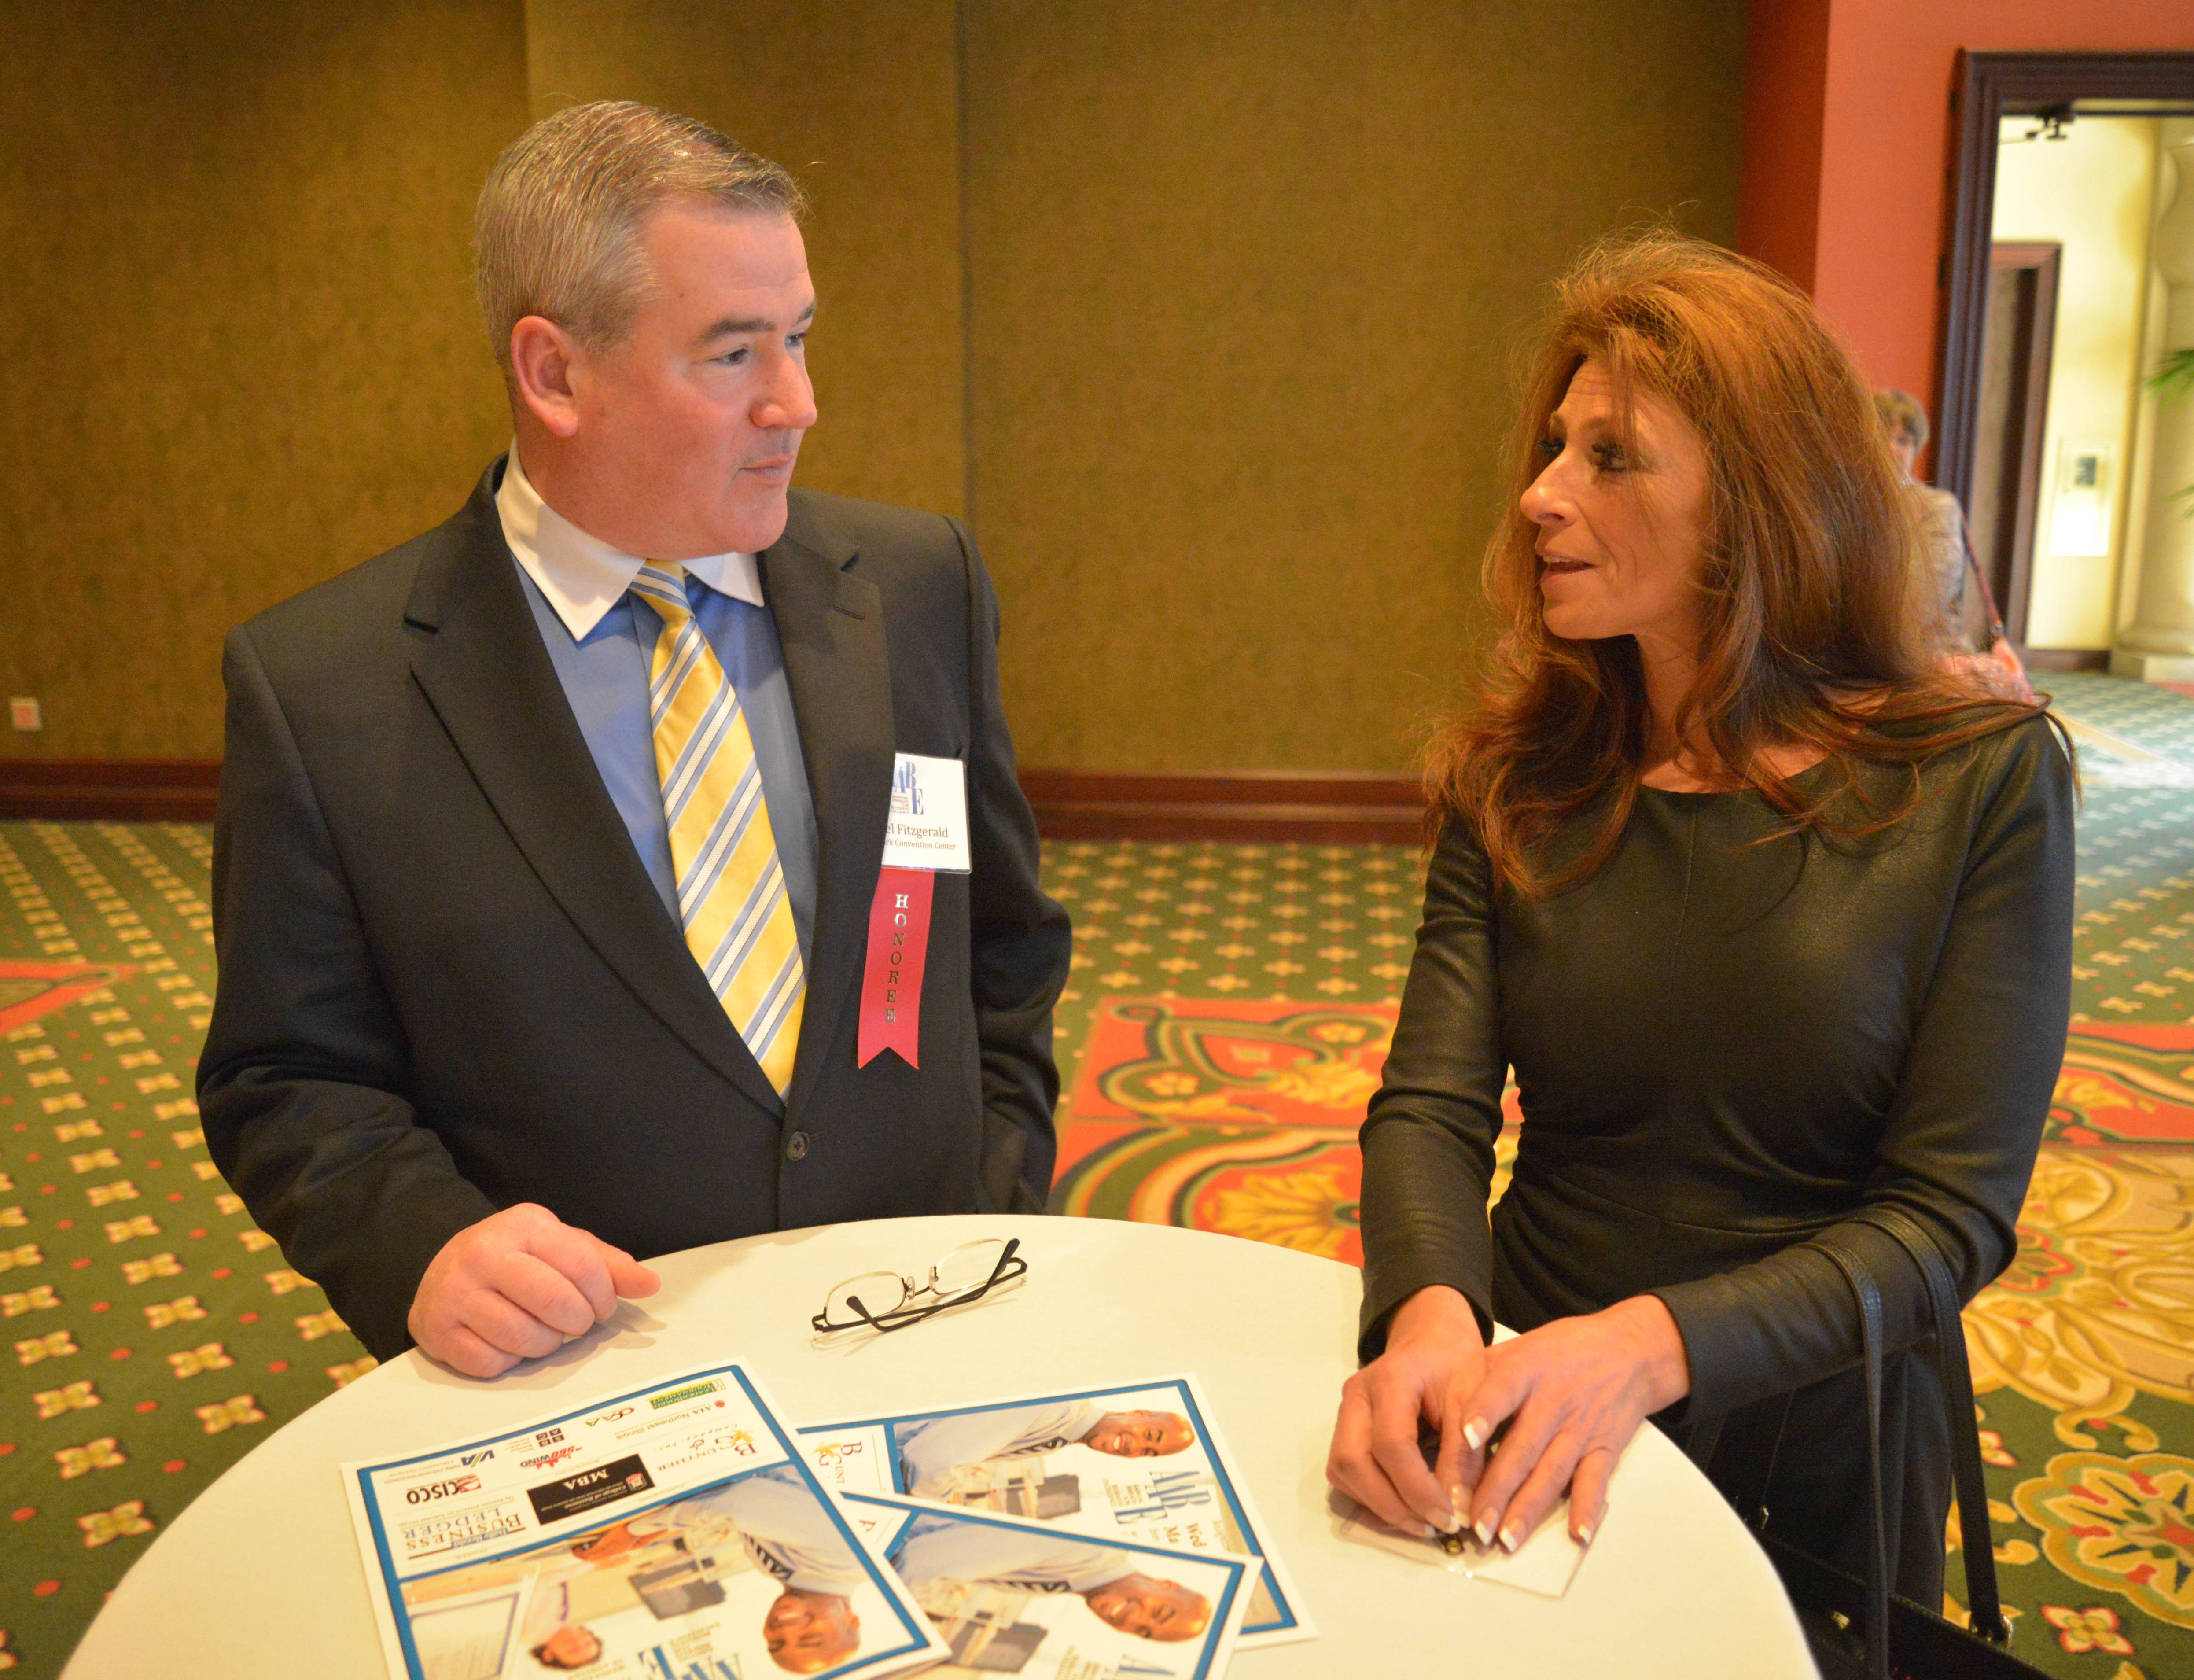 Daniel Fitzgerald and Kari Stramaglia of the Tinley Park Convention Center chat during the Daily Herald Business Ledger AABE awards Wednesday.